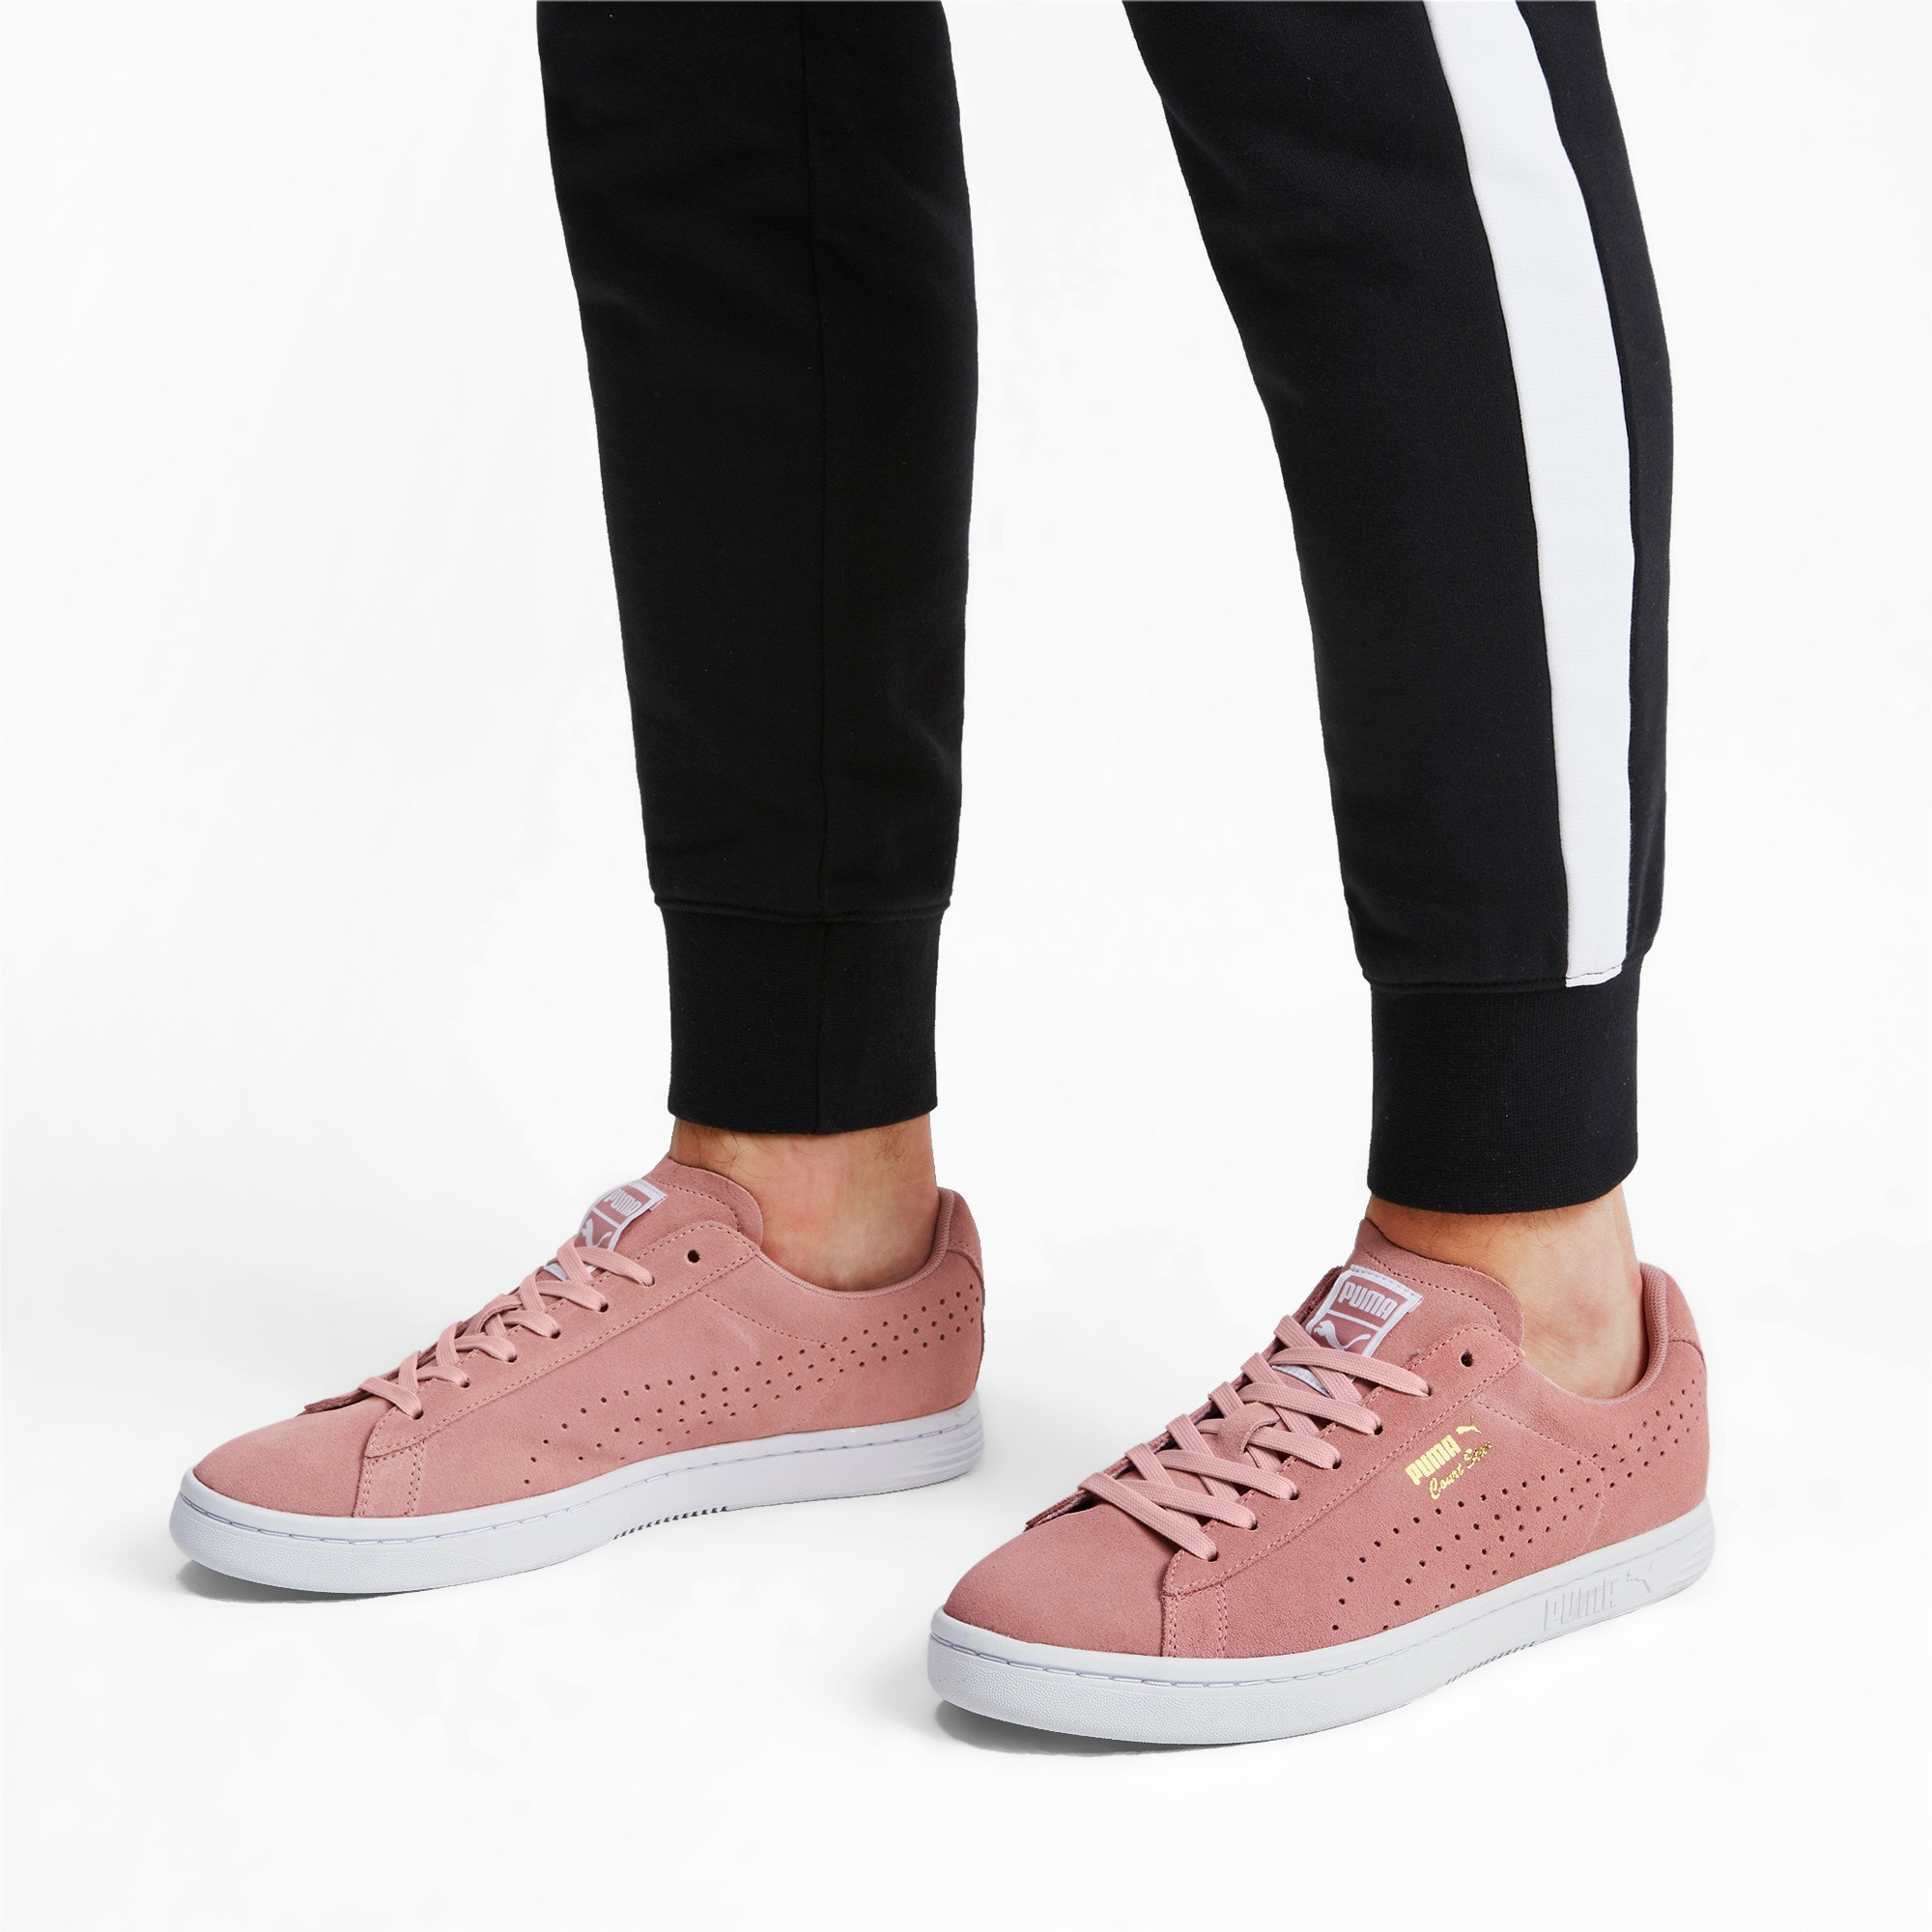 Thumbnail 3 of Court Star Suede Sneakers, Bridal Rose-Puma White, medium